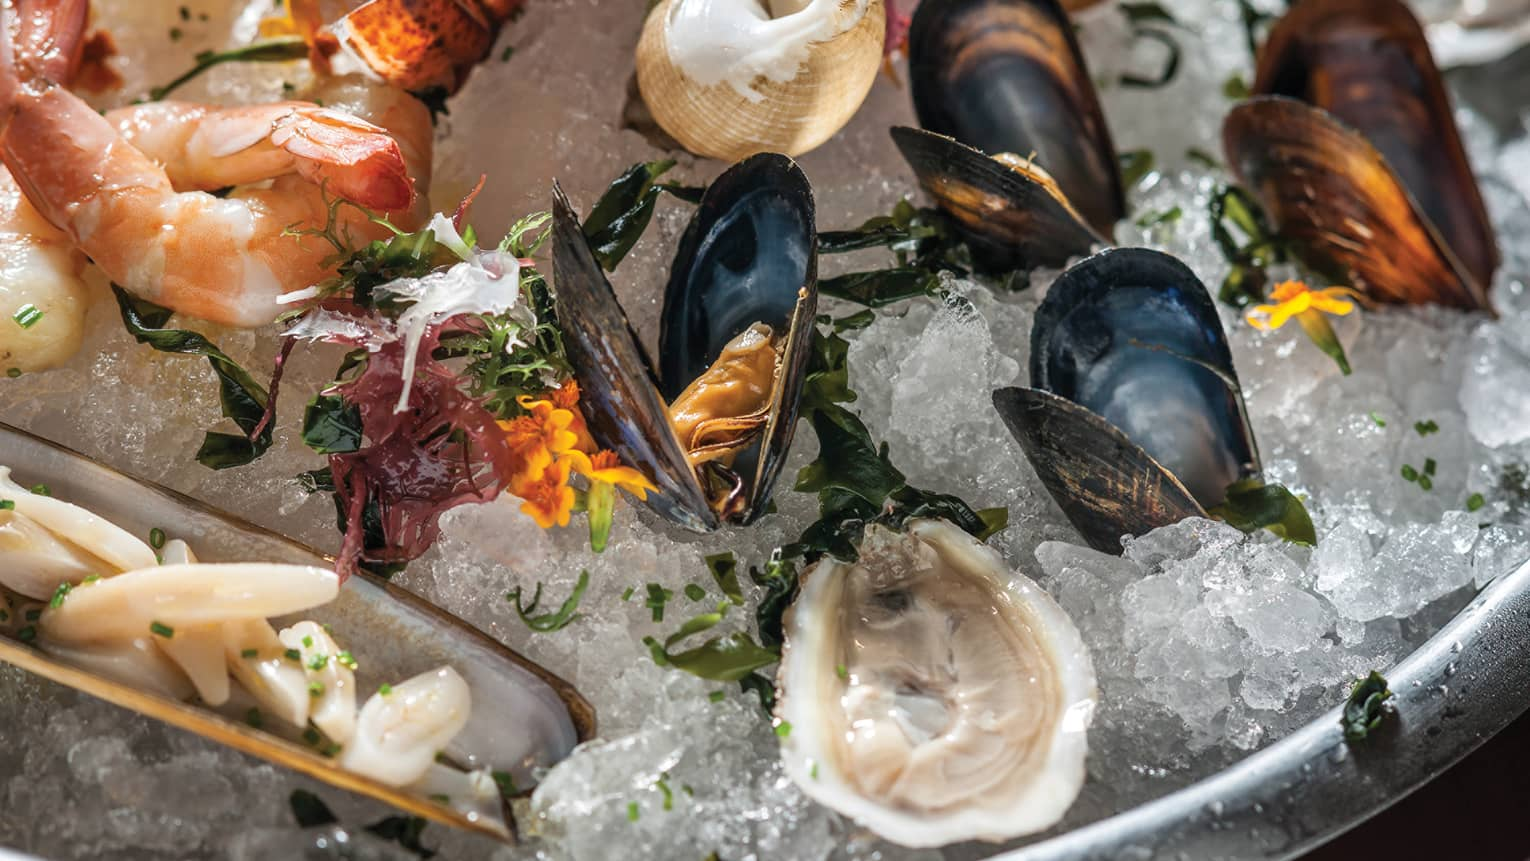 Cold shellfish platter, shrimp, oysters, mussels on ice